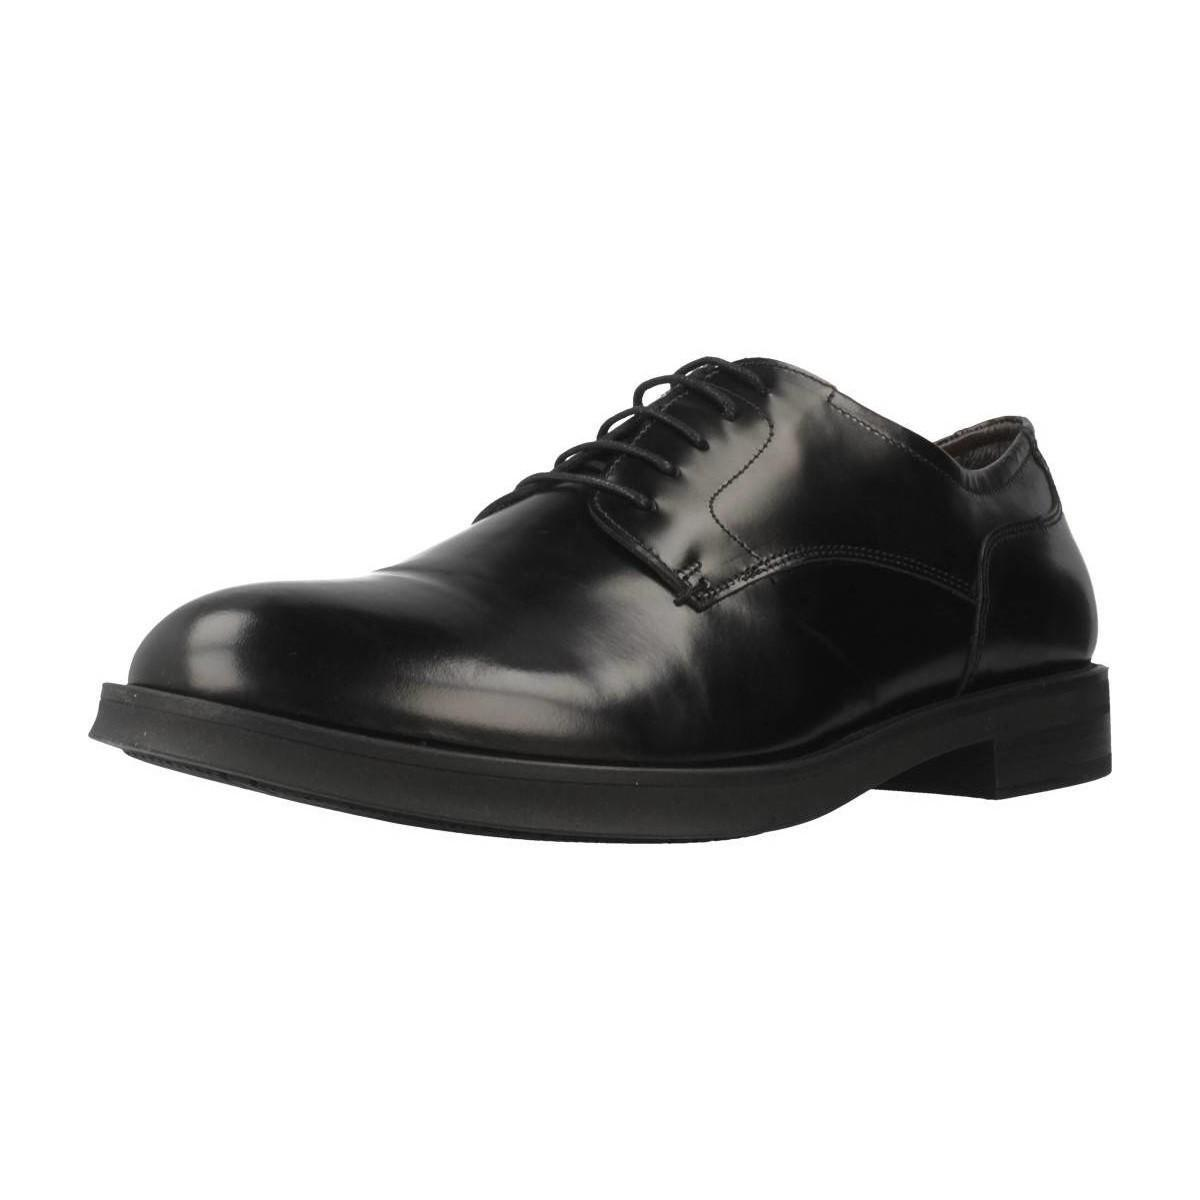 4f849222024e1 Stonefly - Class Ii Men's In Black for Men - Lyst. View fullscreen